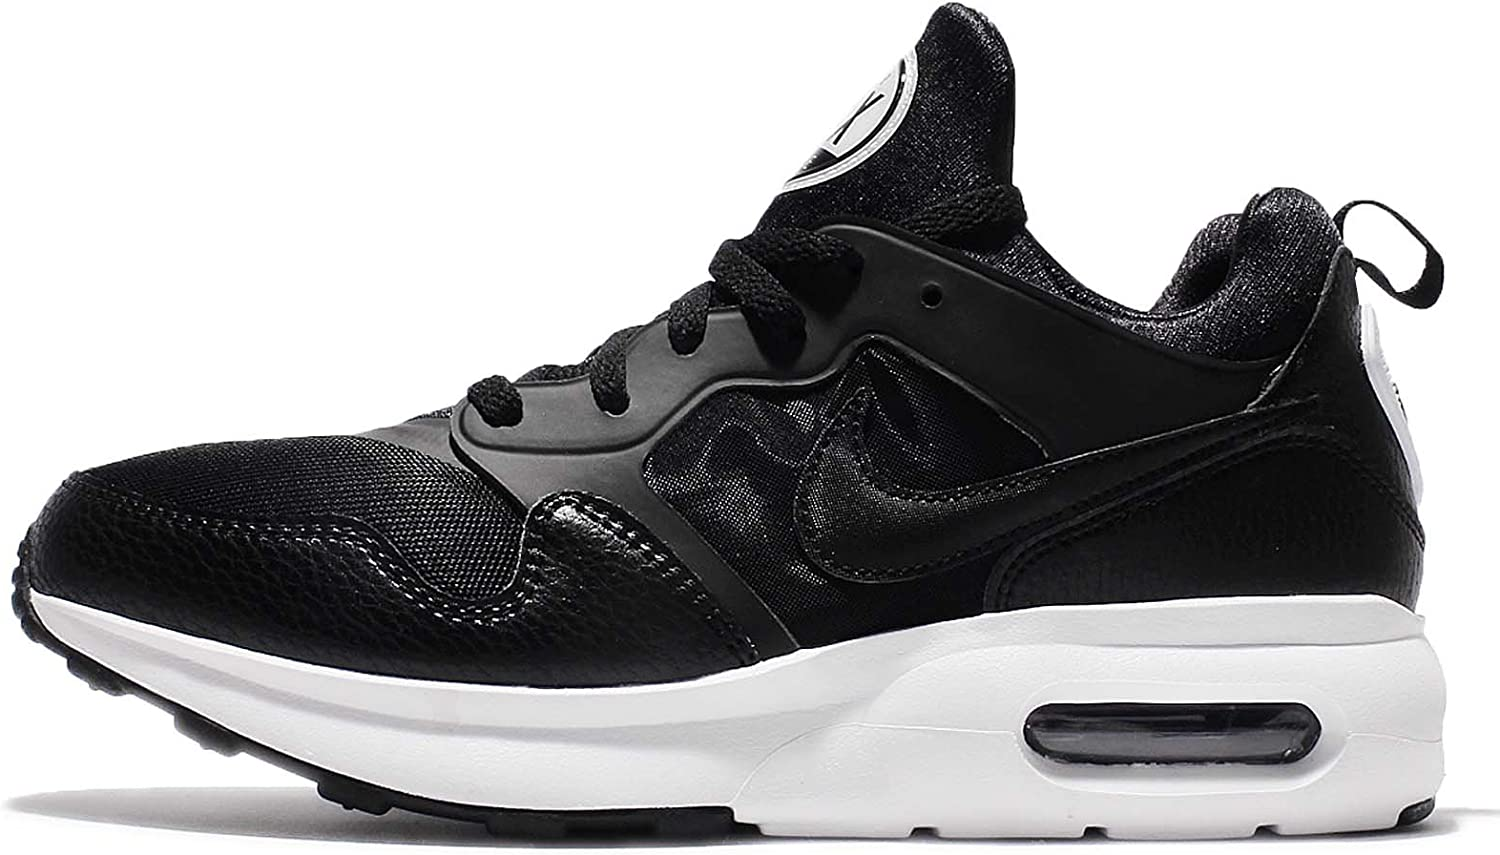 NIKE Men's Air Max Prime SL Black Black White Running shoes 12 Men US (15)